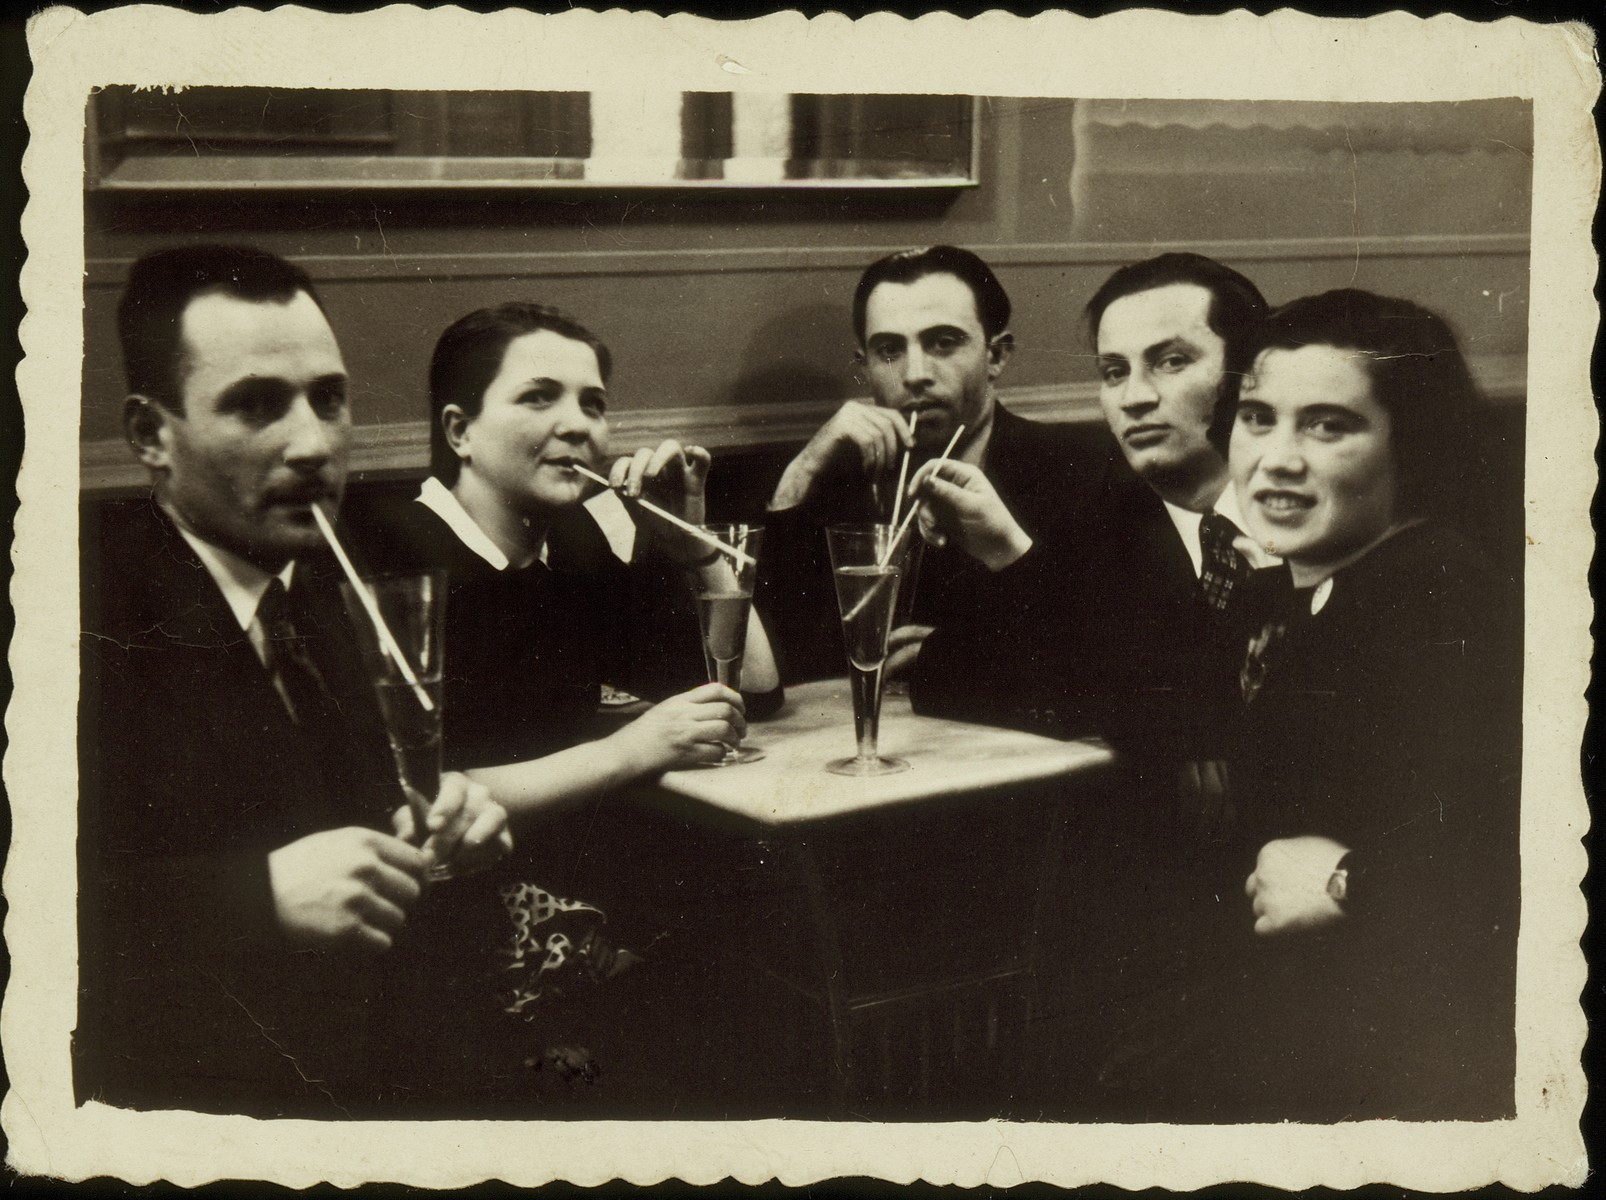 Etchke Jurdyczanski celebrates his plans to immigrate to Palestine in a restaurant in Vilna.   Etchke Jurdyczanski (Isaac Juris), is second from right.  He survived the Holocaust in Siberia, and the fate of the others is unknown.